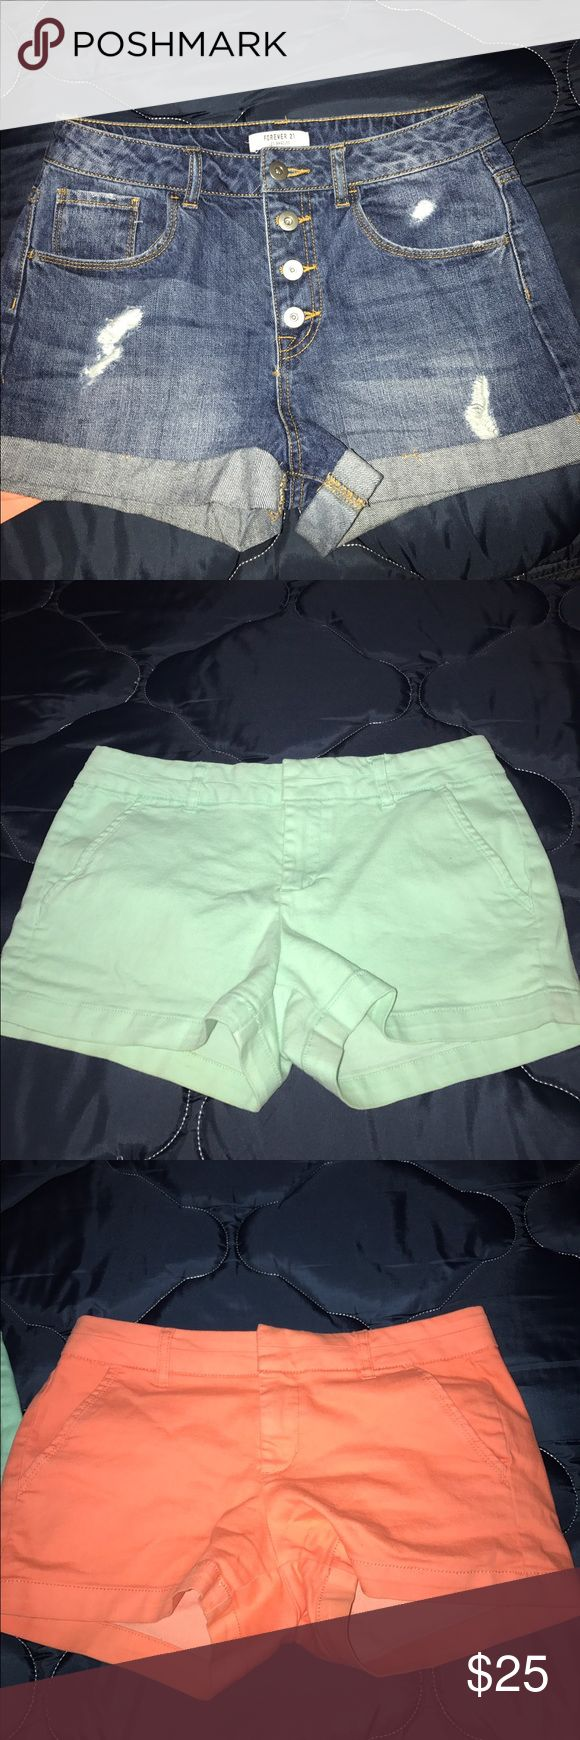 🔥PRICE DROP!🔥bundle of 3 shorts One pair of mint green shorts from Harper, one pair of neon coraly orange shorts from Harper , and one pair of high waisted distressed dark denim wash shorts from forever 21. All in size 27. Available as a bundle for discounted price or sold separately. Just ask for the pair you want and I can make a separate listing Shorts Jean Shorts